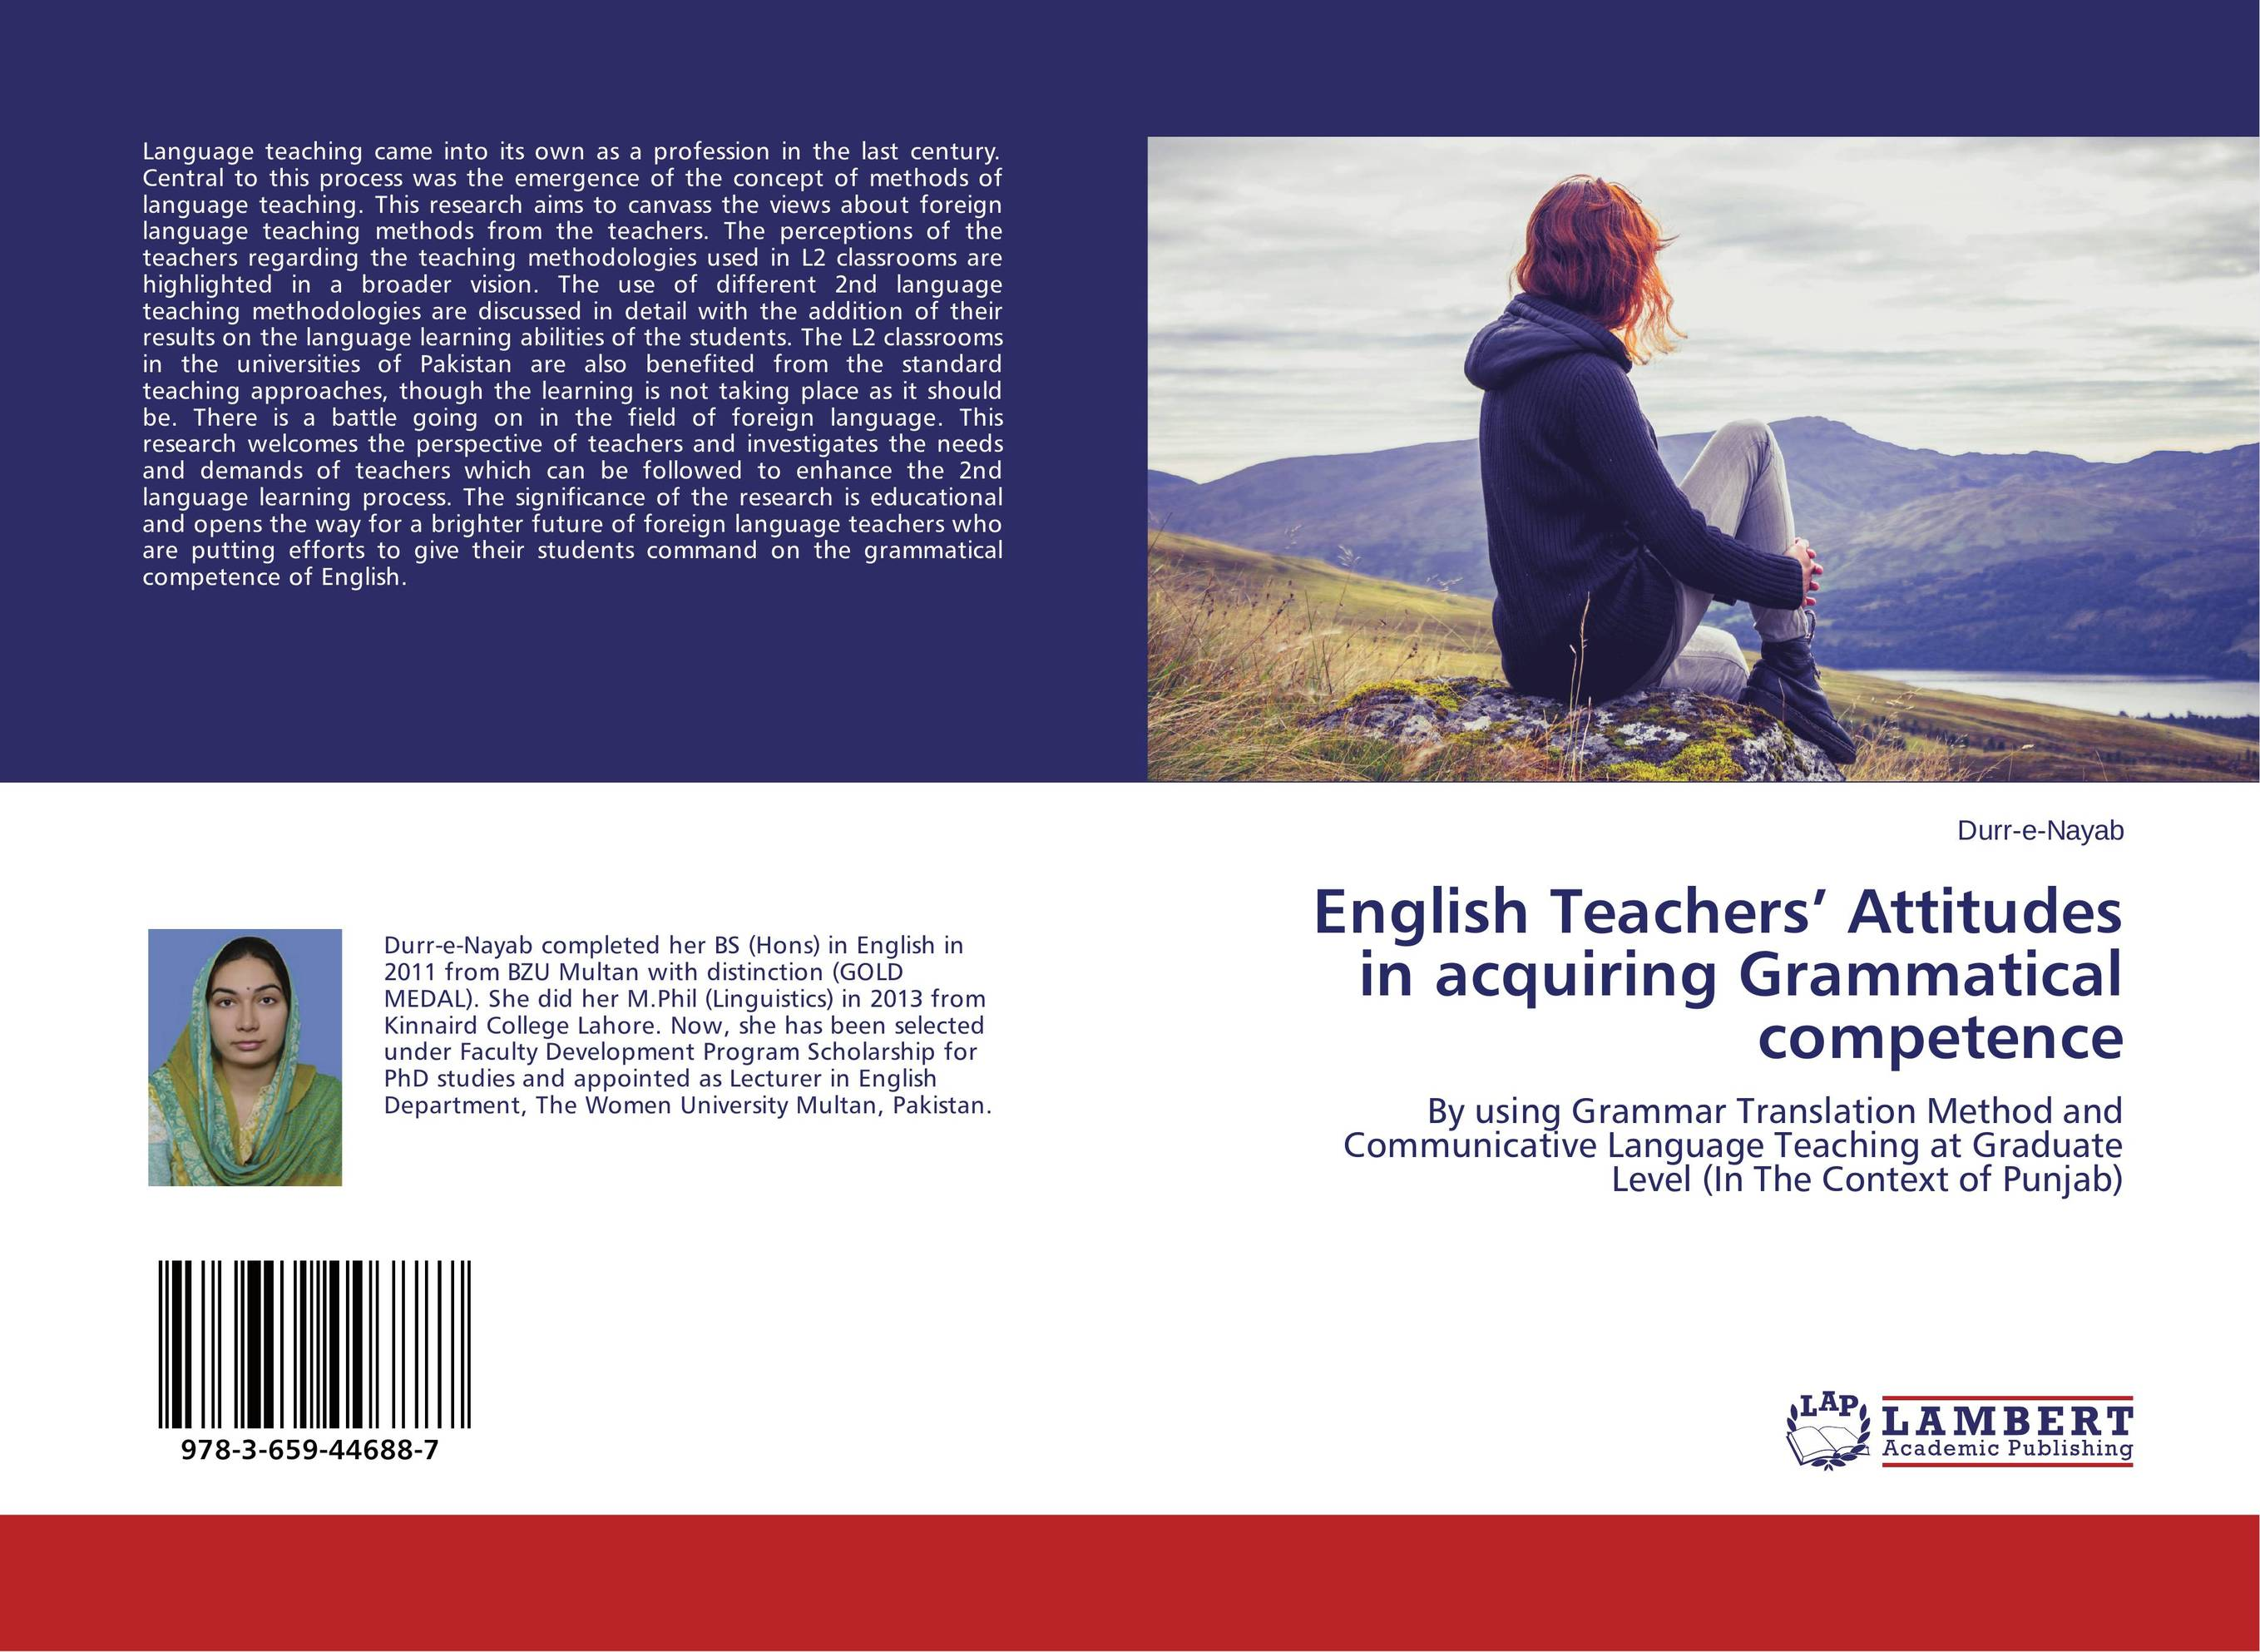 English Teachers' Attitudes in acquiring Grammatical competence james wasajja the english language communicative needs among international students